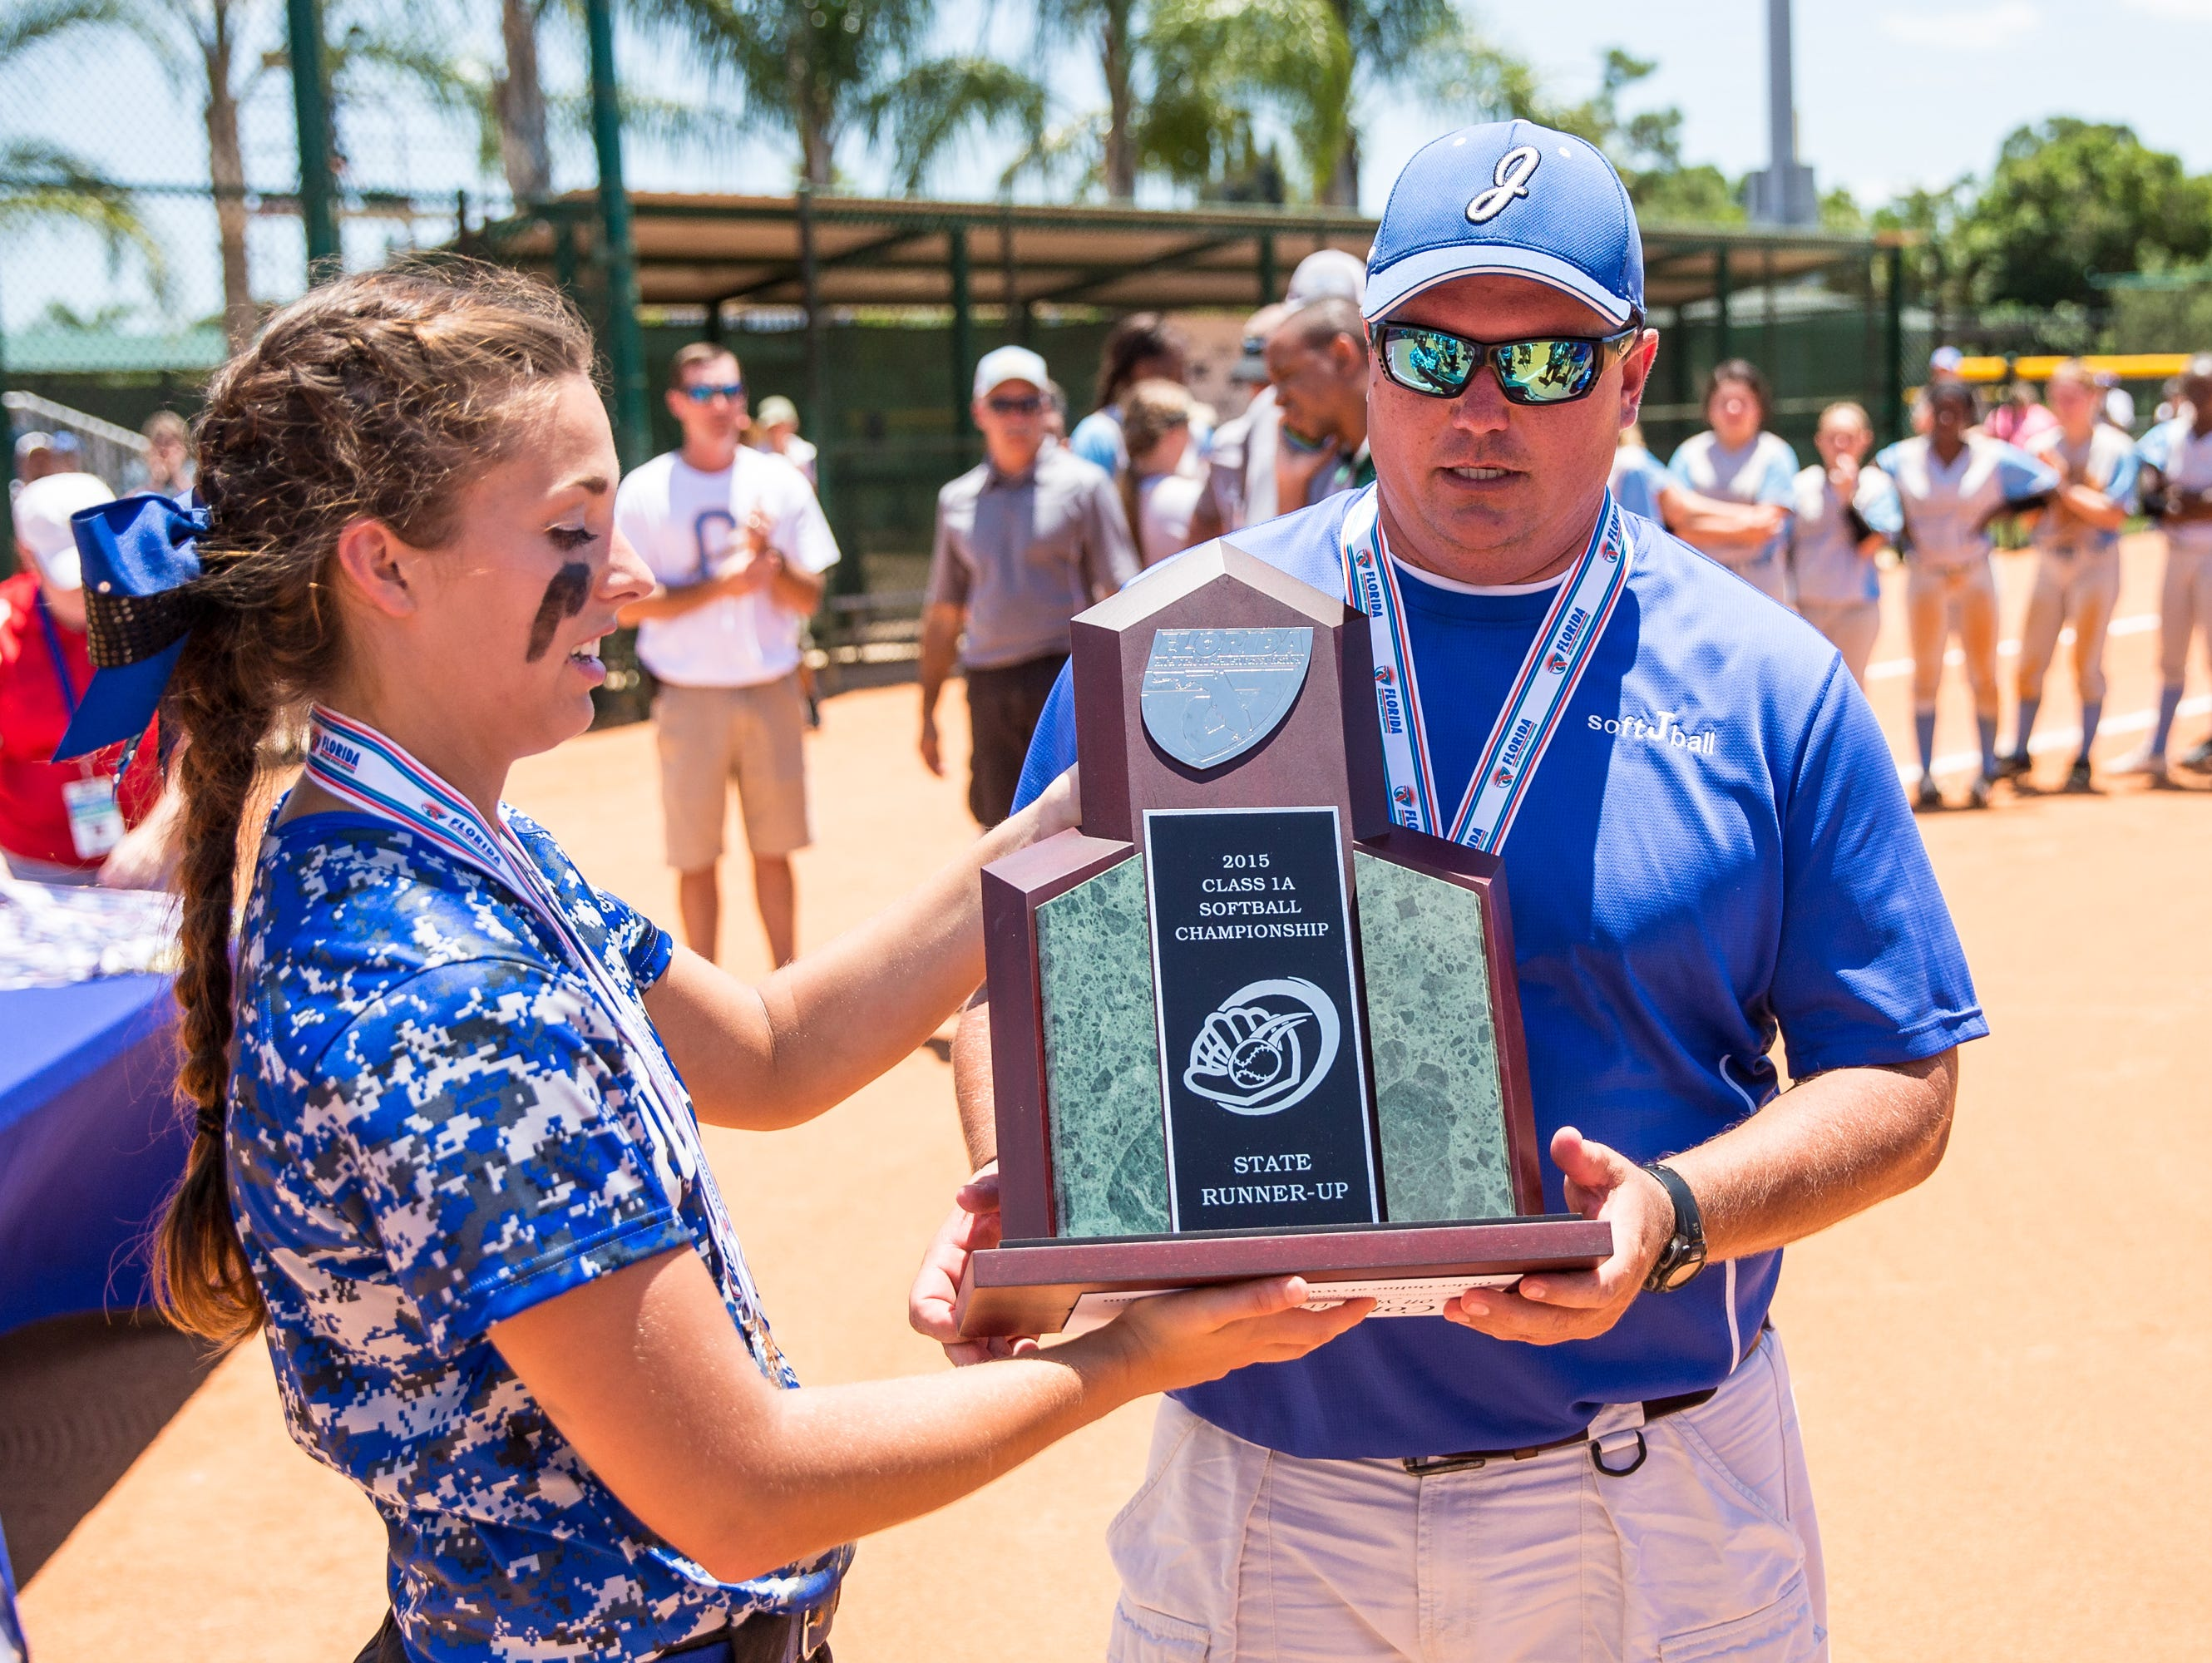 Jay High School Royals Miranda Roberts and Coach Brian Watson accept the Class 1A State Runner-up trophy after the game against Chiefland in the Class 1A state softball final at Historic Dodgertown in Vero Beach, FL on Thursday.